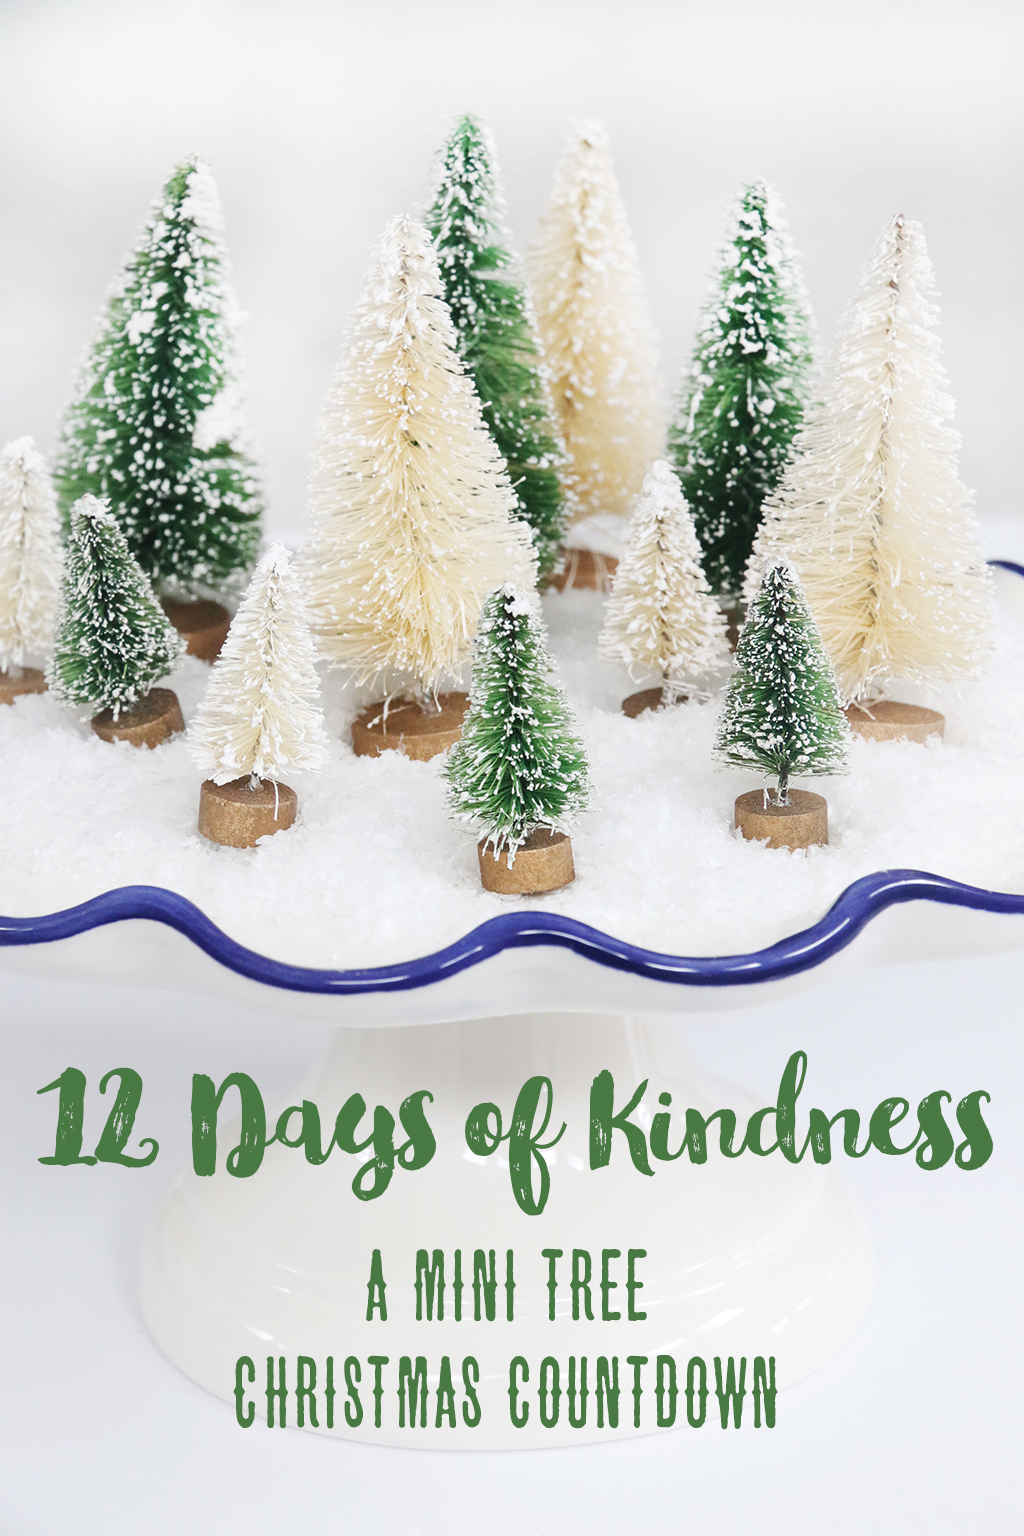 12 Days of Kindness-A Christmas Countdown